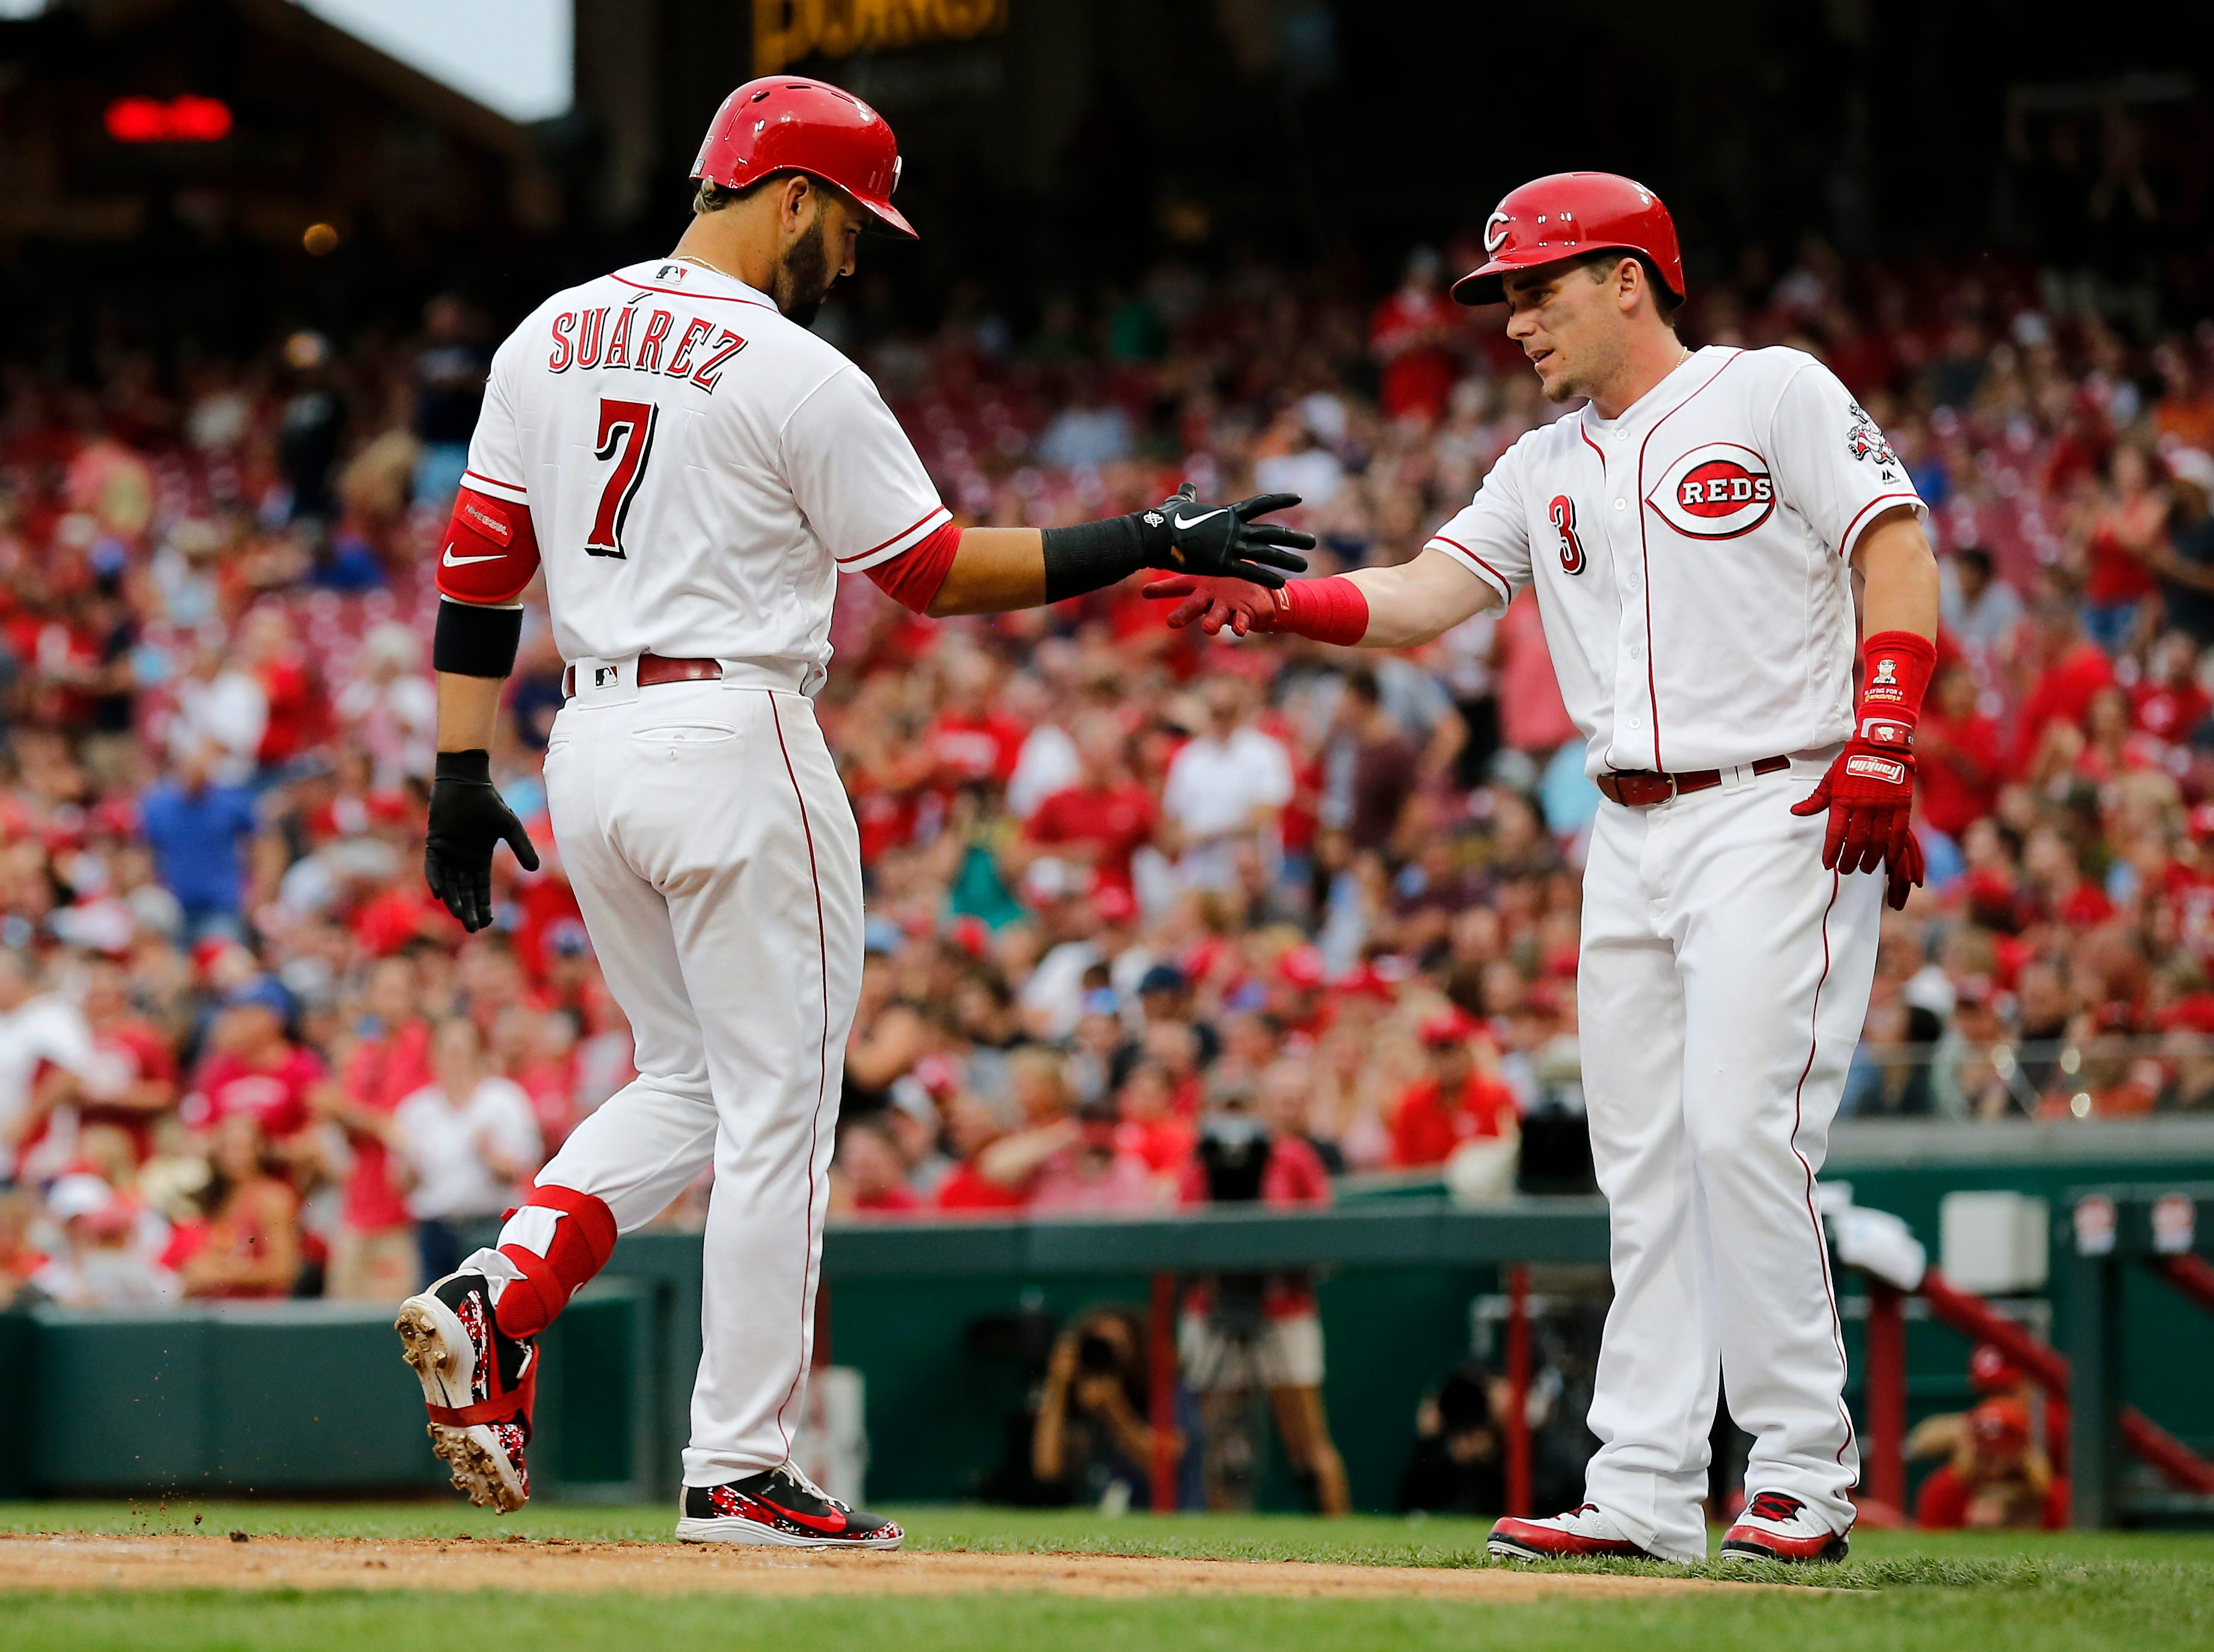 Cincinnati Reds third baseman Eugenio Suarez (7) and second baseman Scooter Gennett (3) shake hands after Suarez's two-run home run in the bottom of the first inning of the MLB National League game between the Cincinnati Reds and the Philadelphia Phillies at Great American Ball Park in downtown Cincinnati on Thursday, July 26, 2018. The Reds trailed 4-2 after three innings.